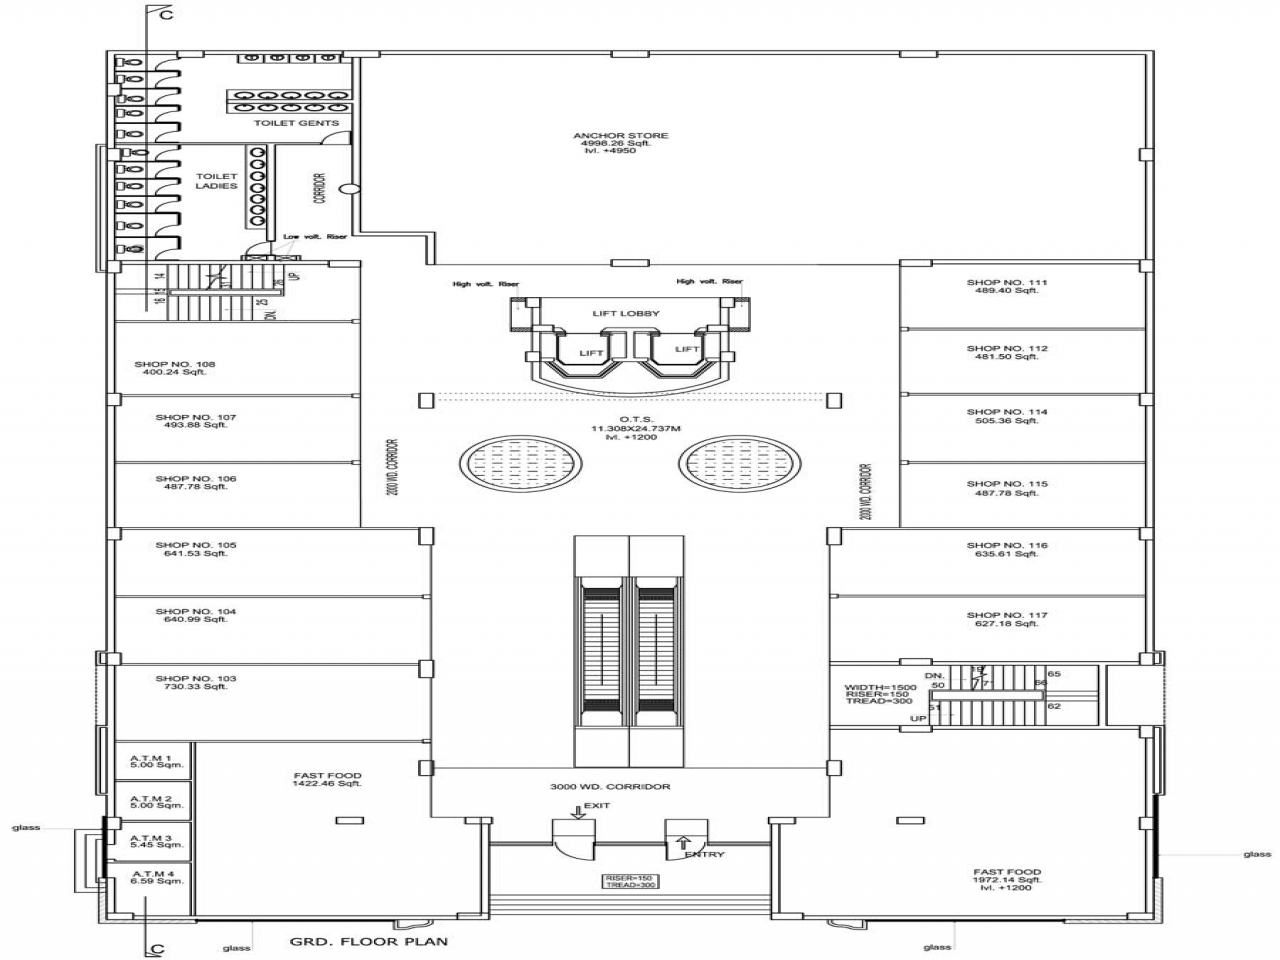 Mall floor plan small retail strip mall 12000 sq ft house for 12000 sq ft house plans